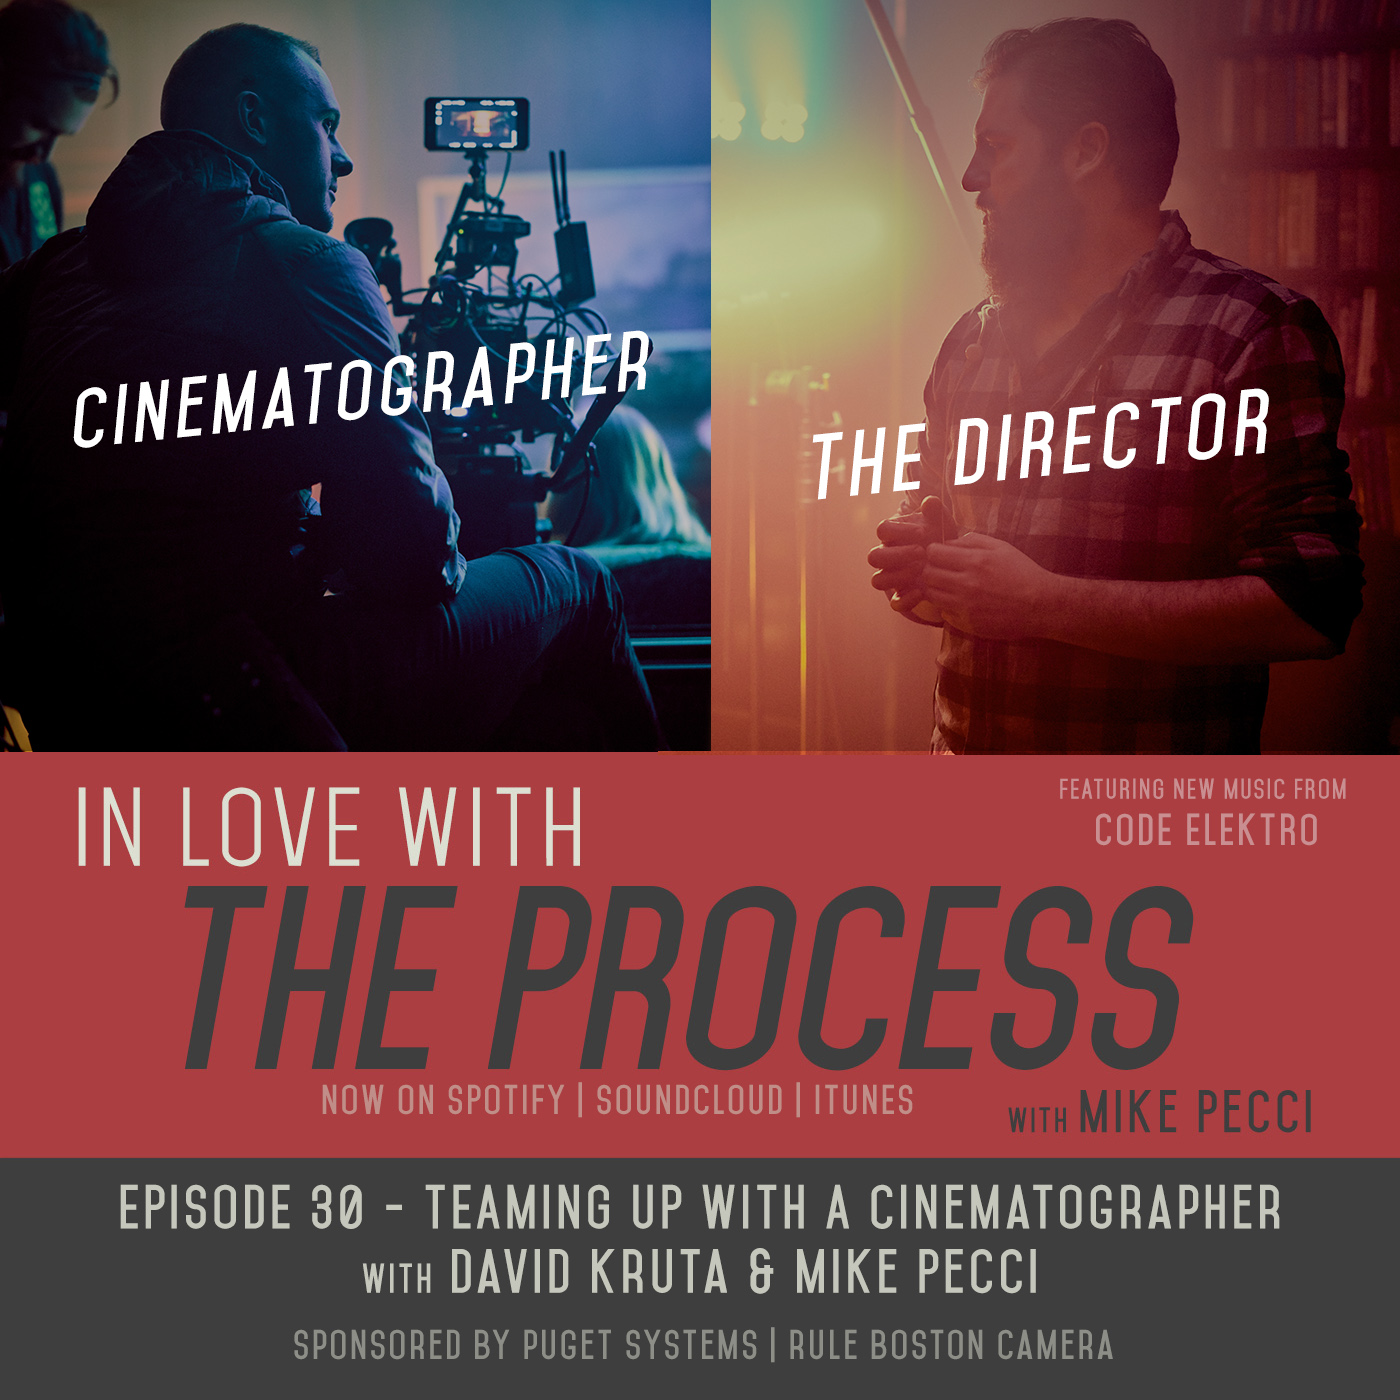 in-love-with-the-process-podcast.jpg